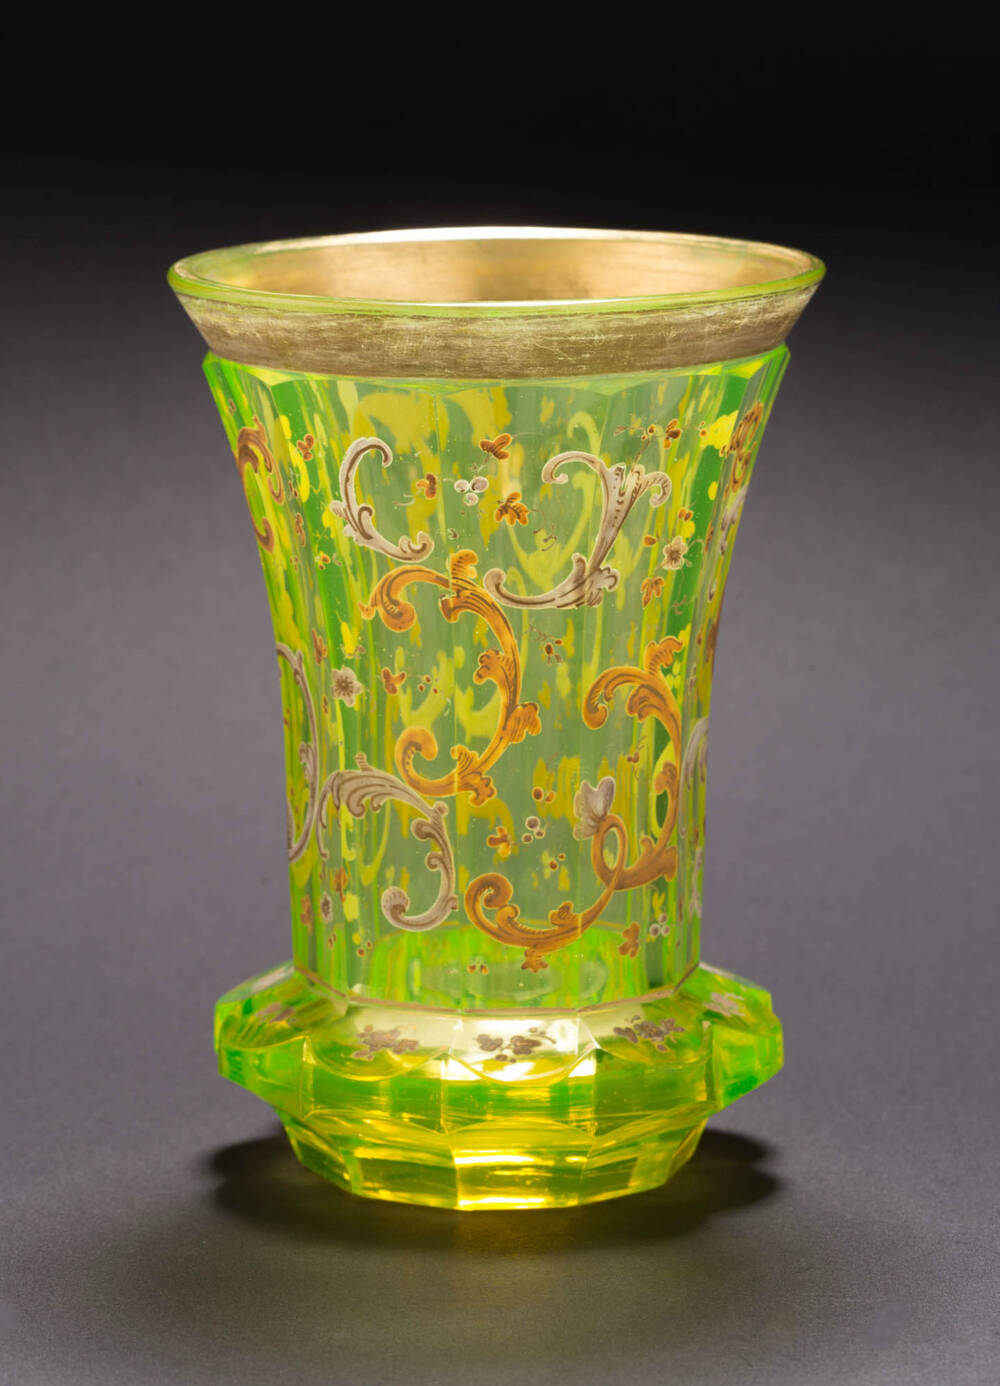 A Vaseline glass showing the distinctive bright green colour